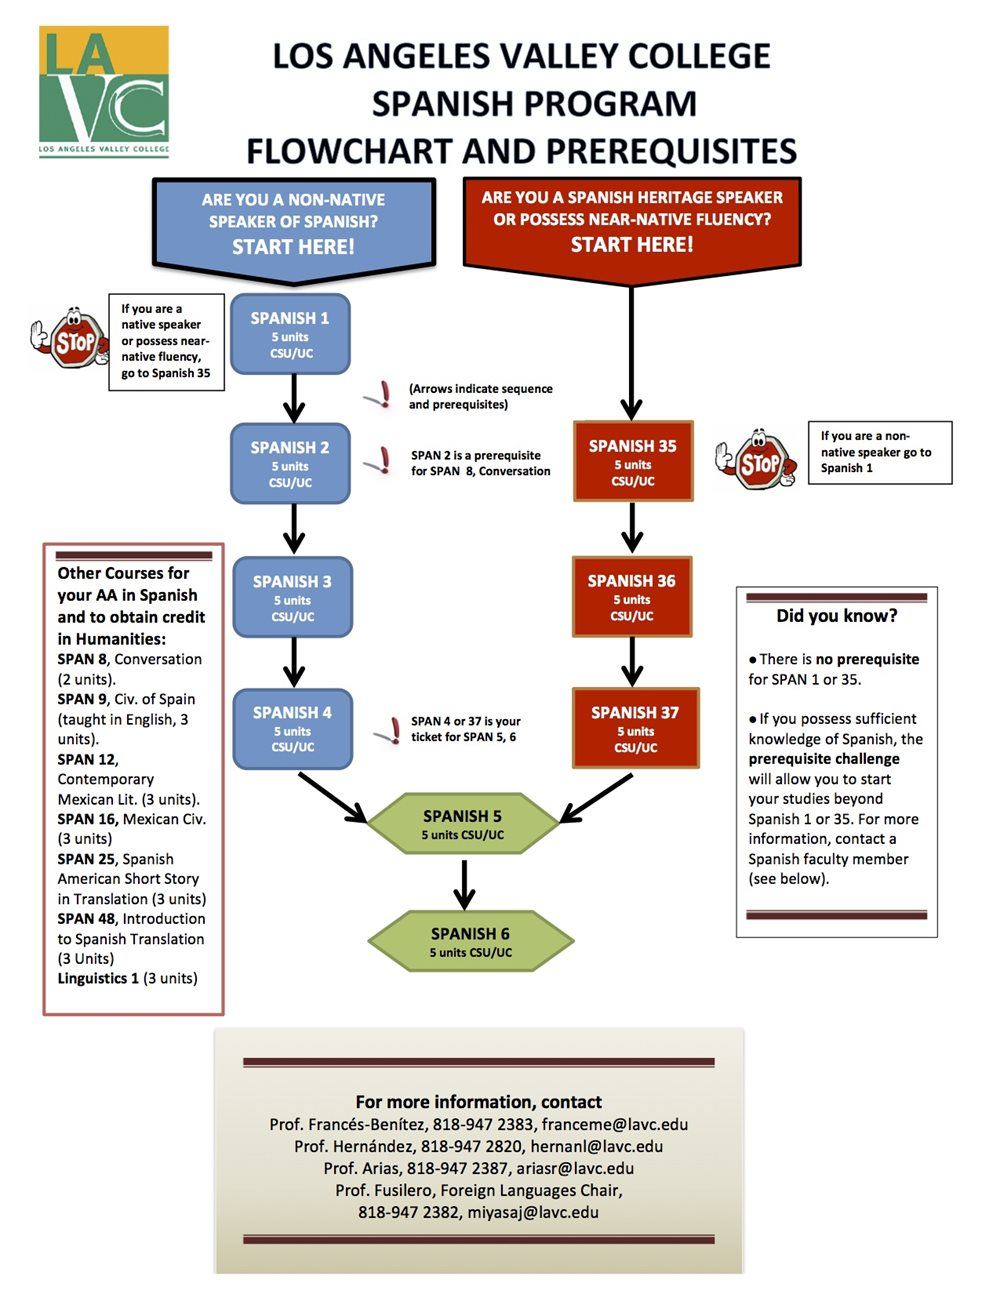 Spanish Program Flowchart - See outline at bottom of page